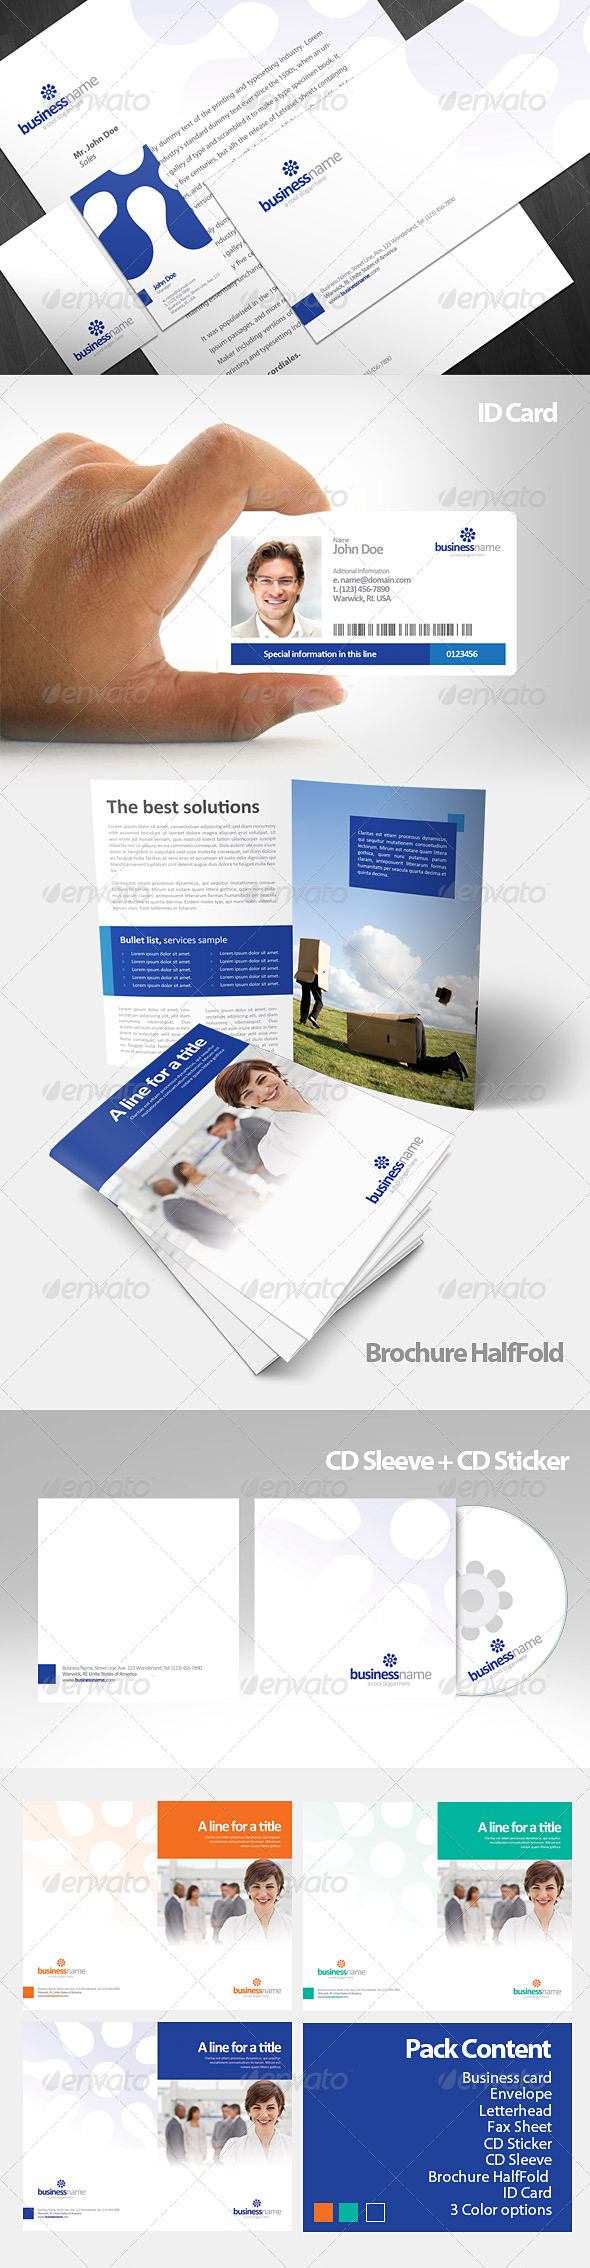 Katra Corporate Identity Pack - Stationery Print Templates